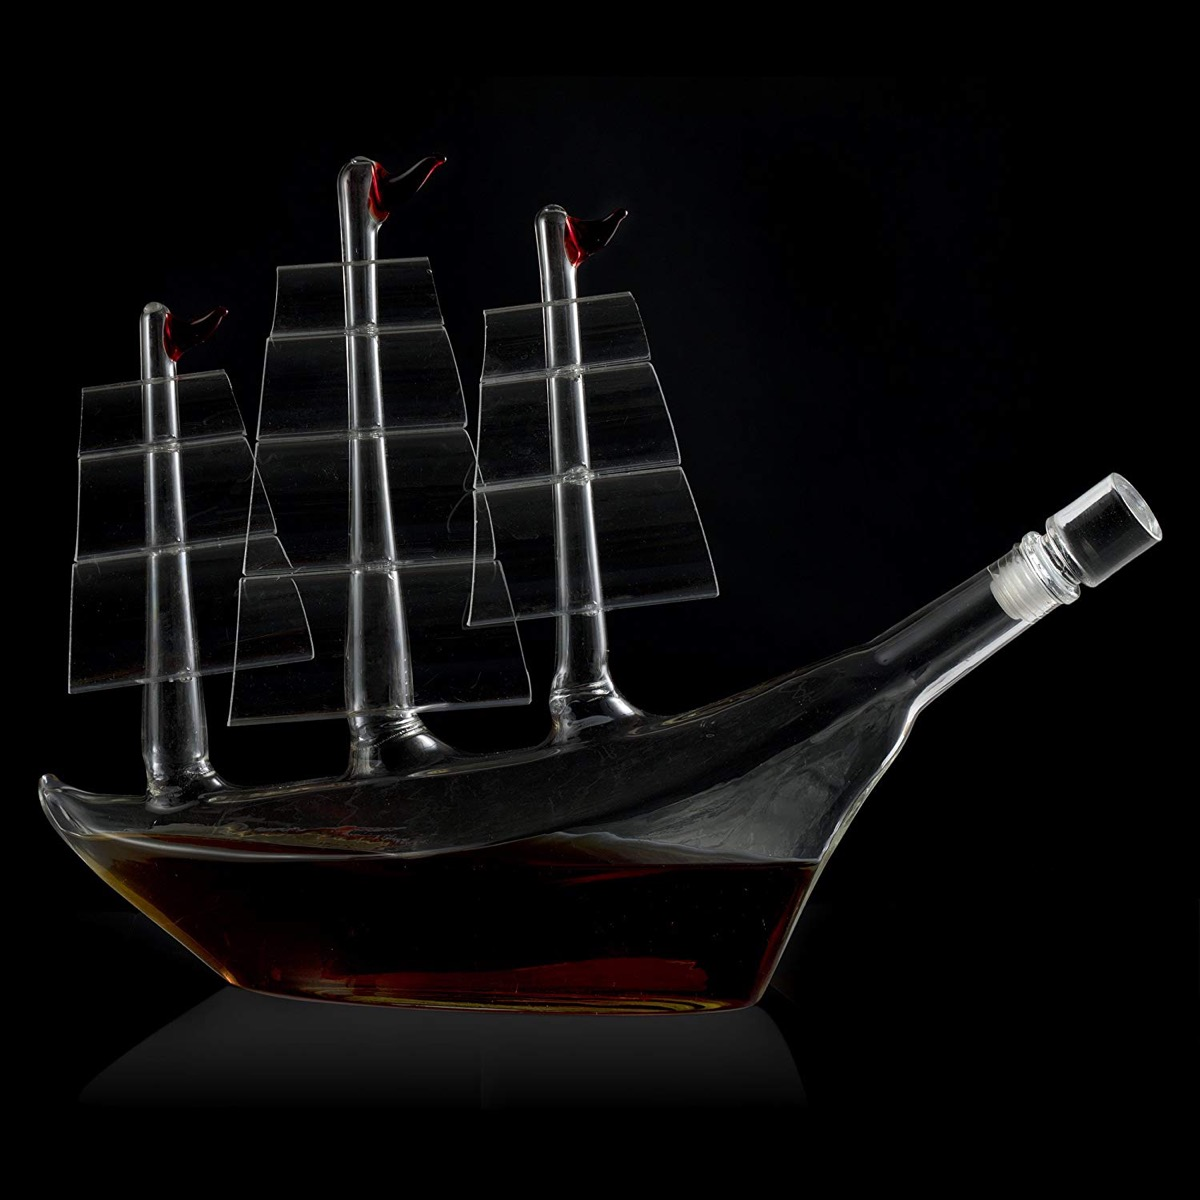 Product Of The Week: A Sailboat Shaped Decanter